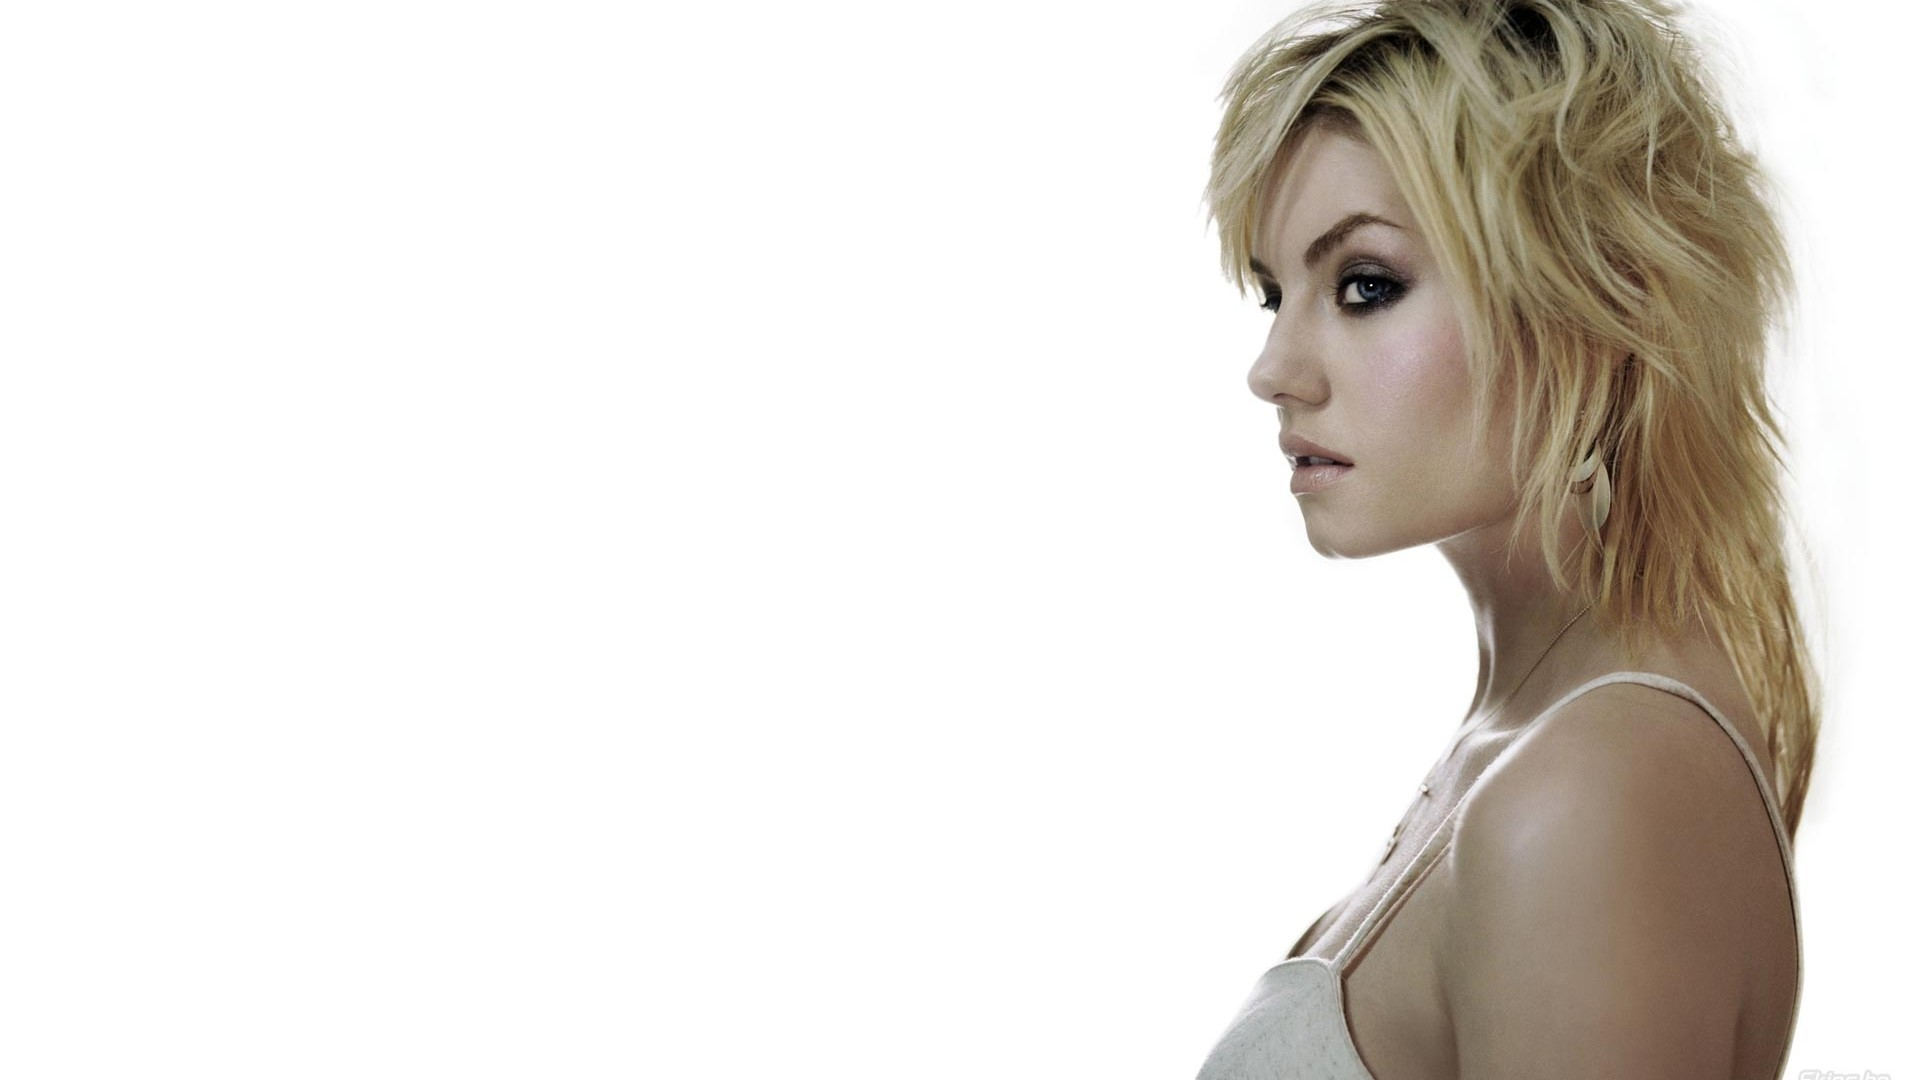 Elisha Cuthbert Hd Wallpapers: Wallpaper Of Elisha Cuthbert ·① WallpaperTag